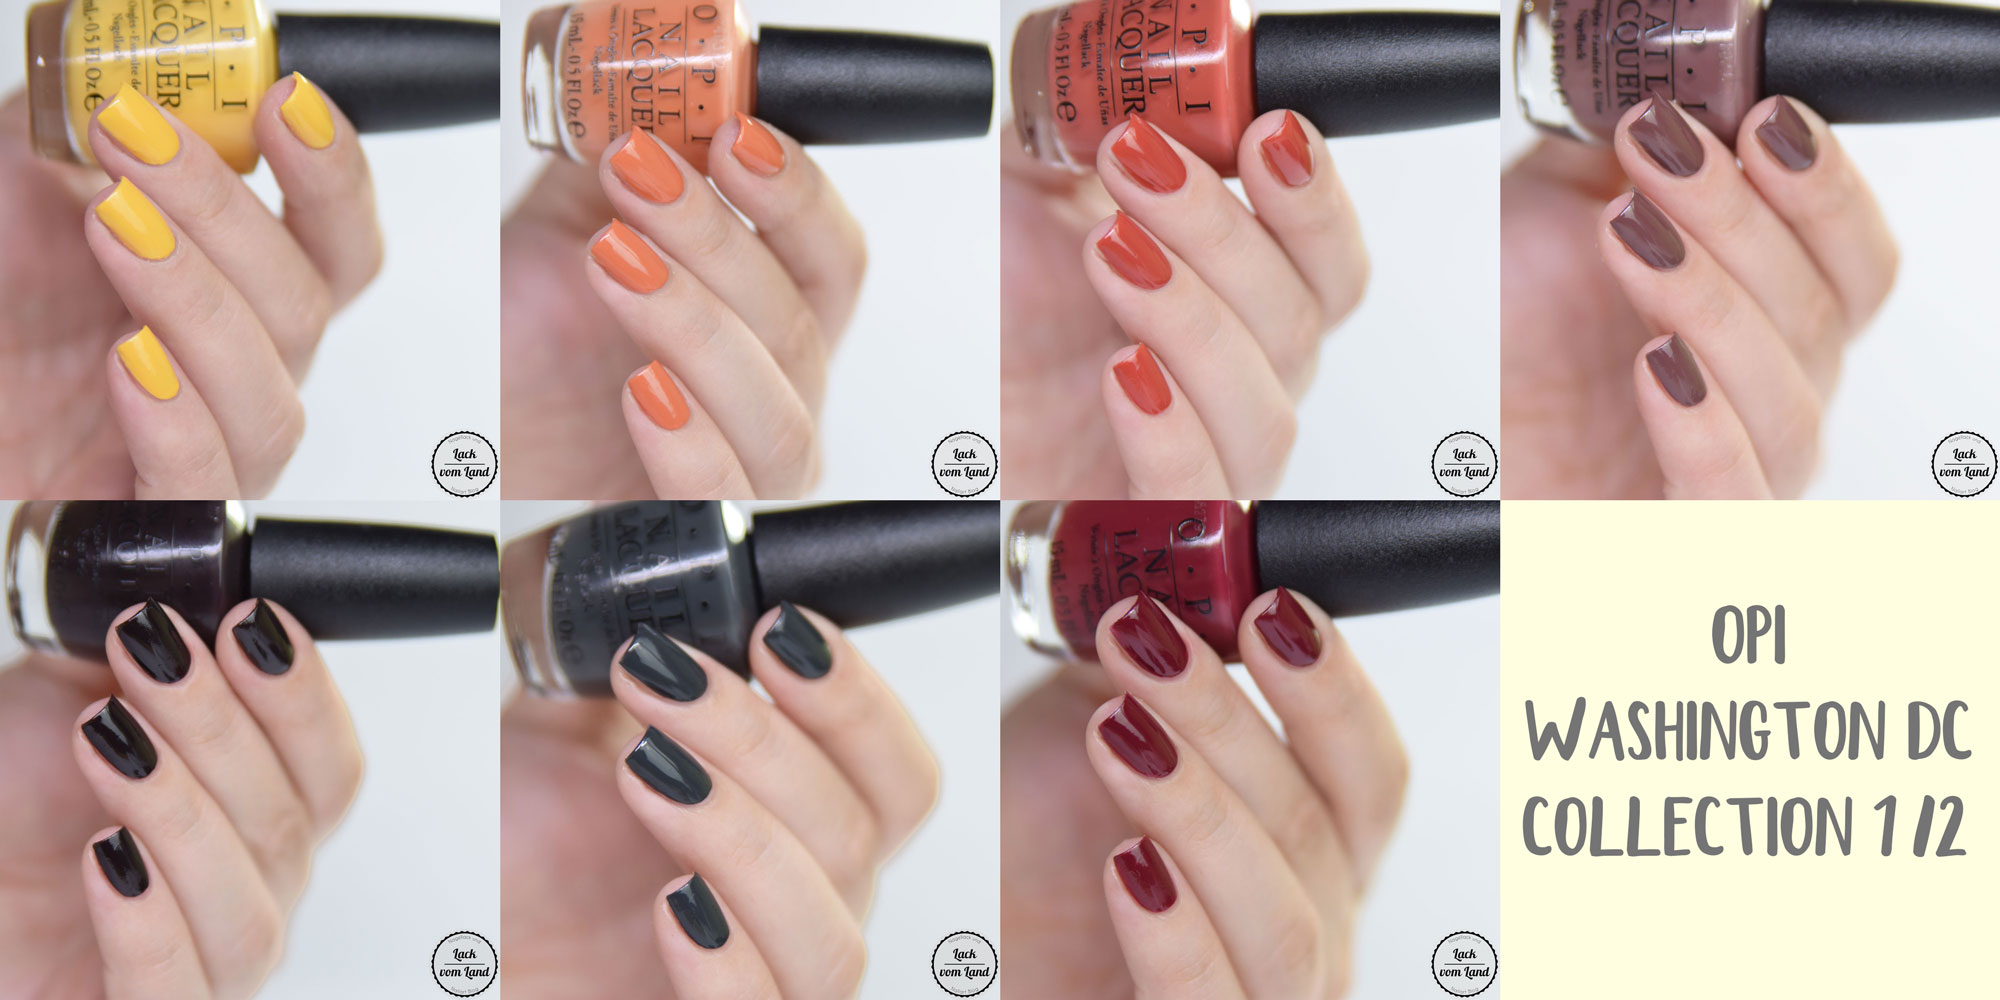 opi-washington-dc-collection-collage-2-von-2tile